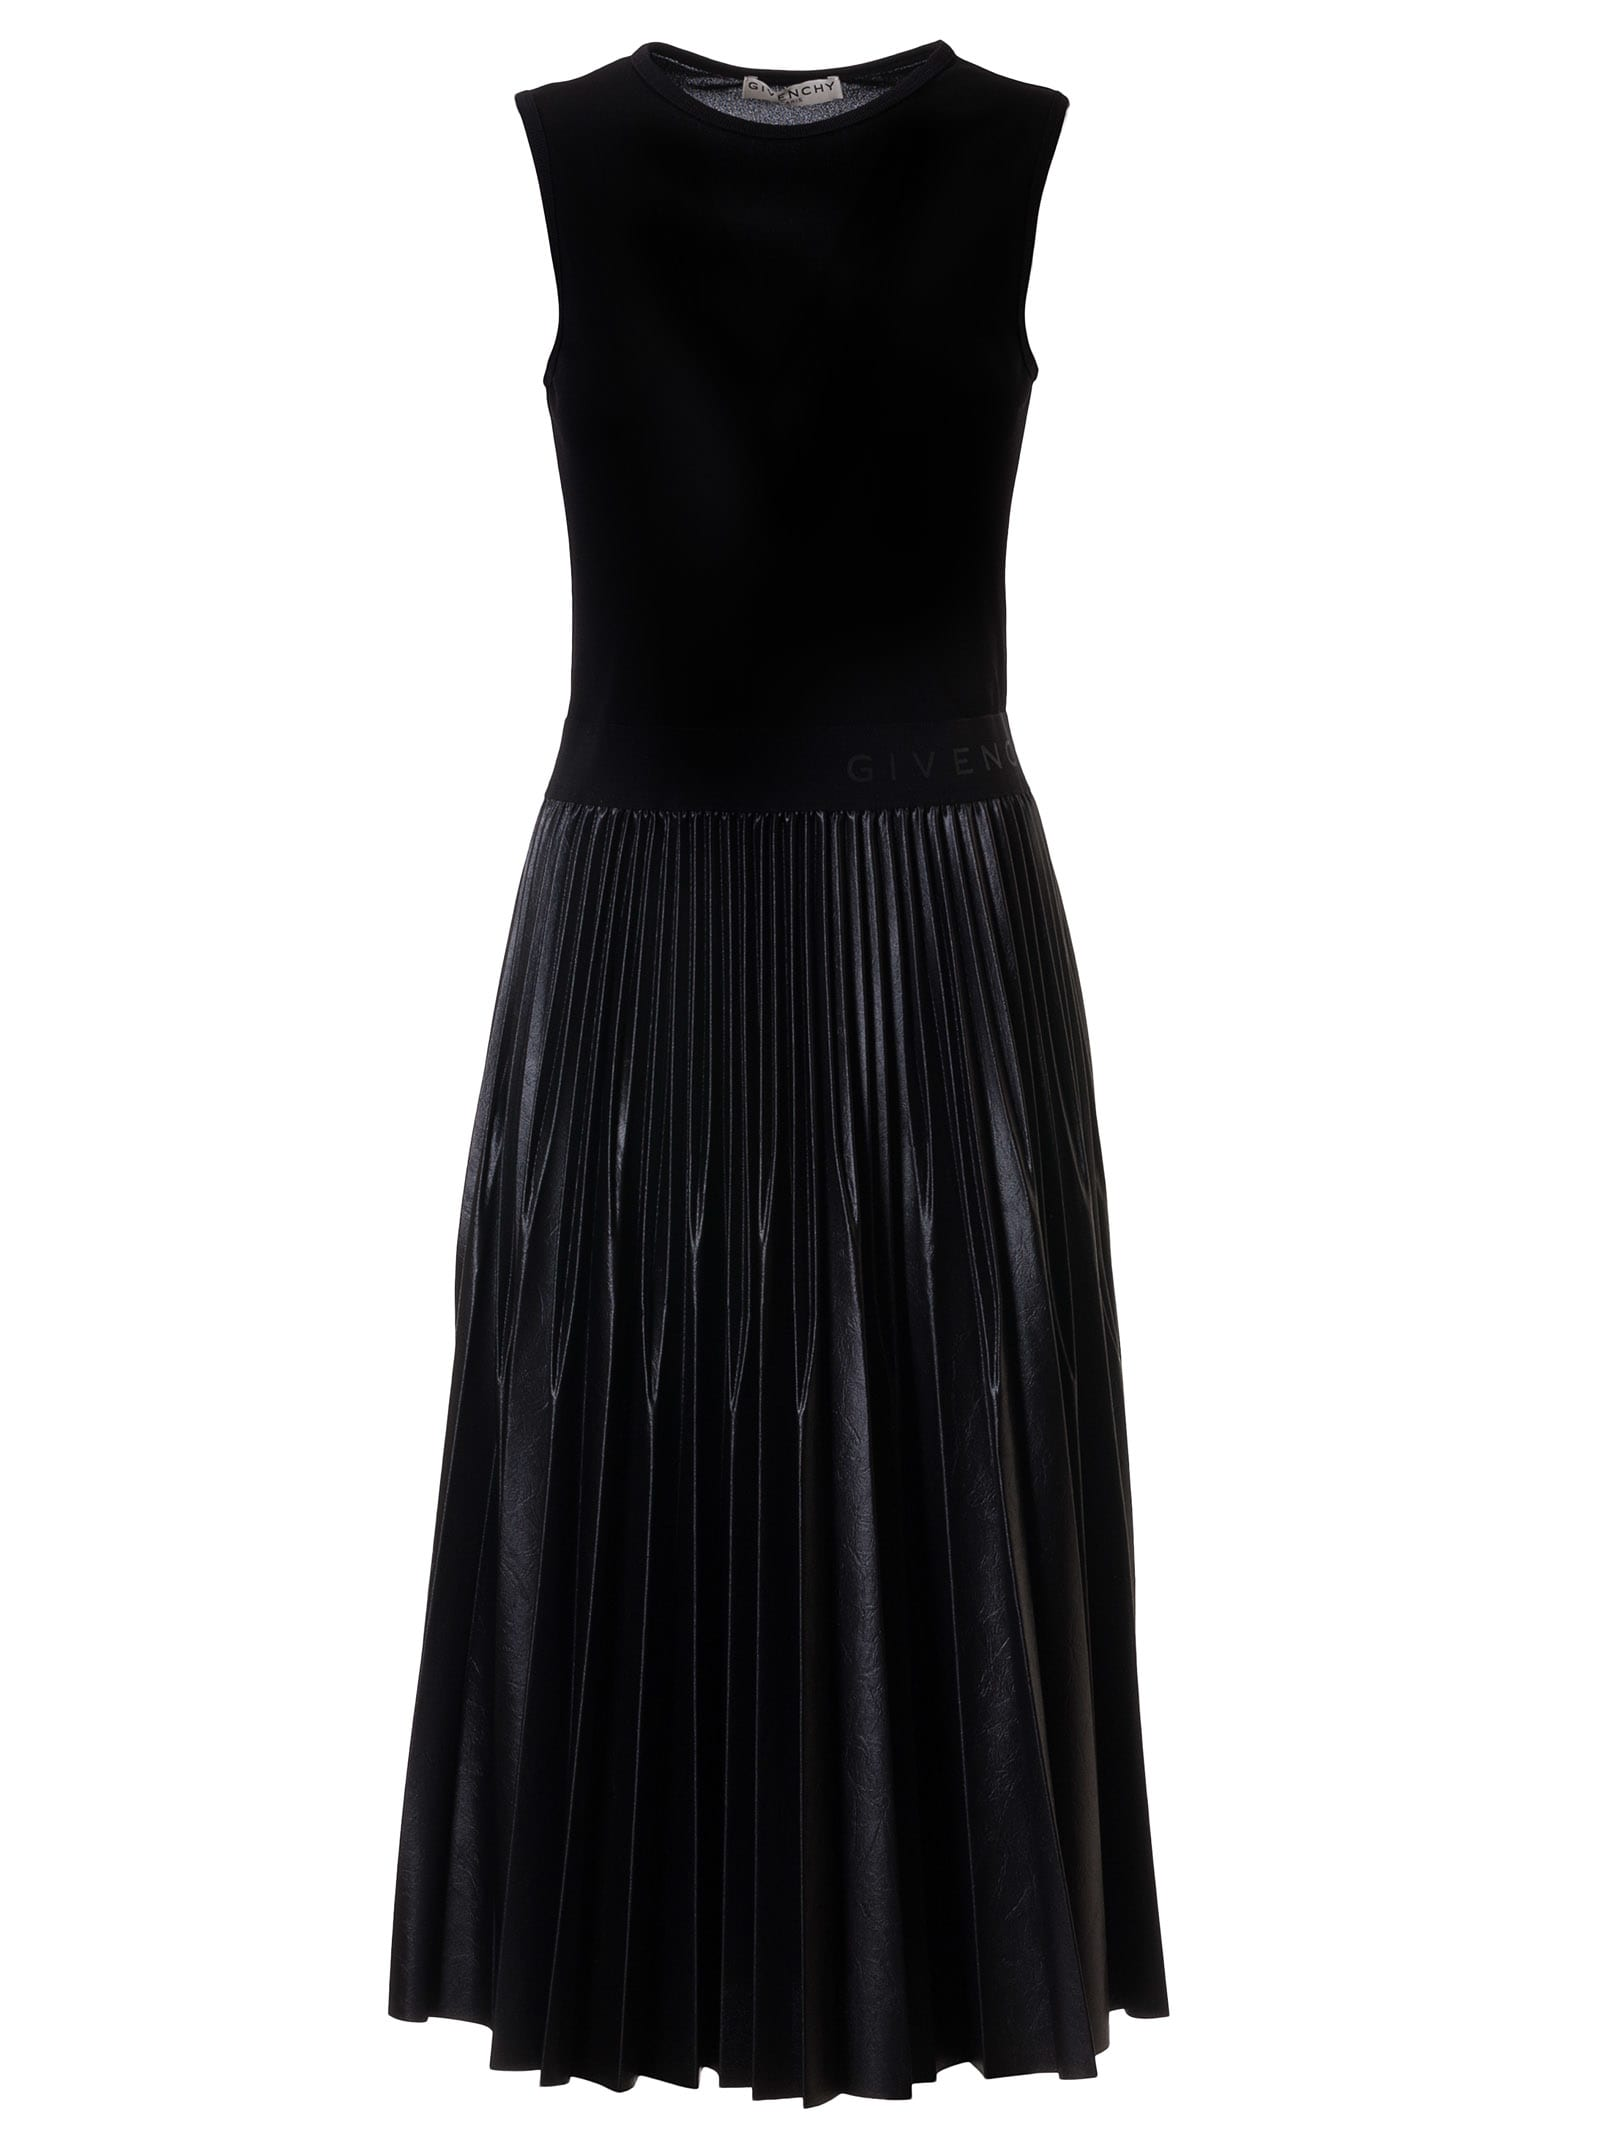 Buy Givenchy Sleeveless Pleated Skirt Dress online, shop Givenchy with free shipping